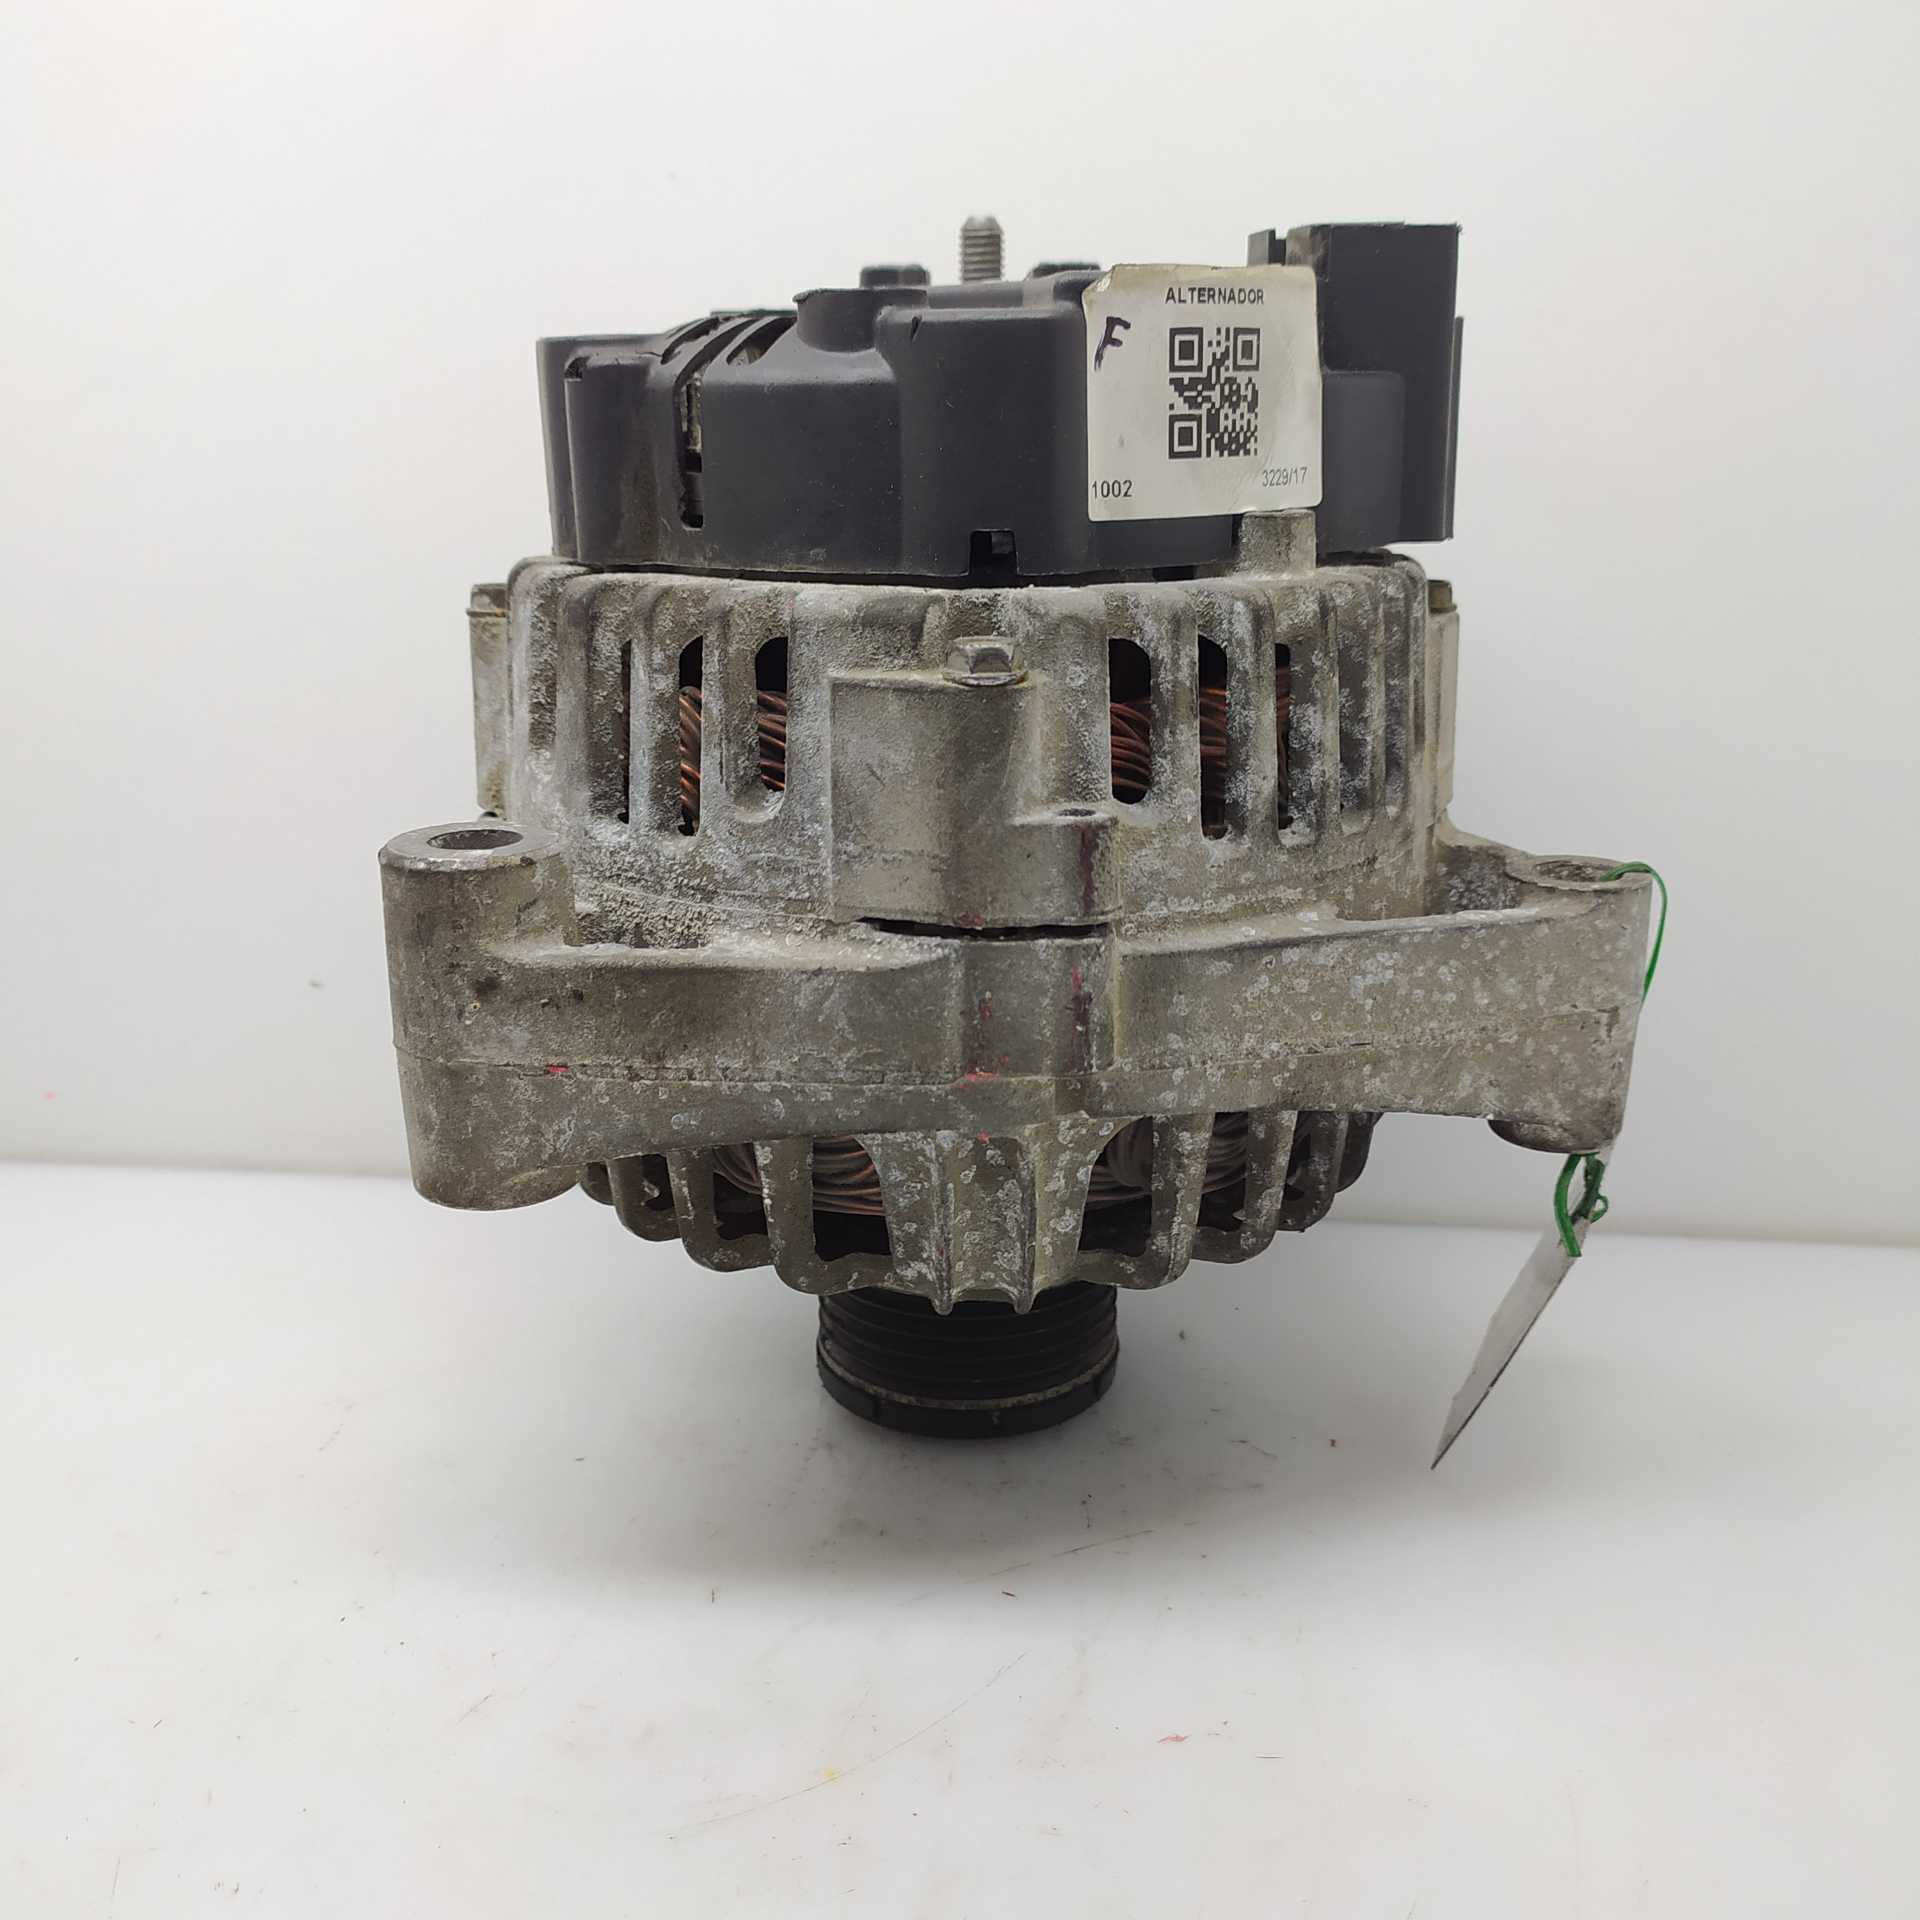 ALTERNADOR SMART FORFOUR 1.3 (454.031) (70 KW / 95 CV) (01.2004 - 06.2006)